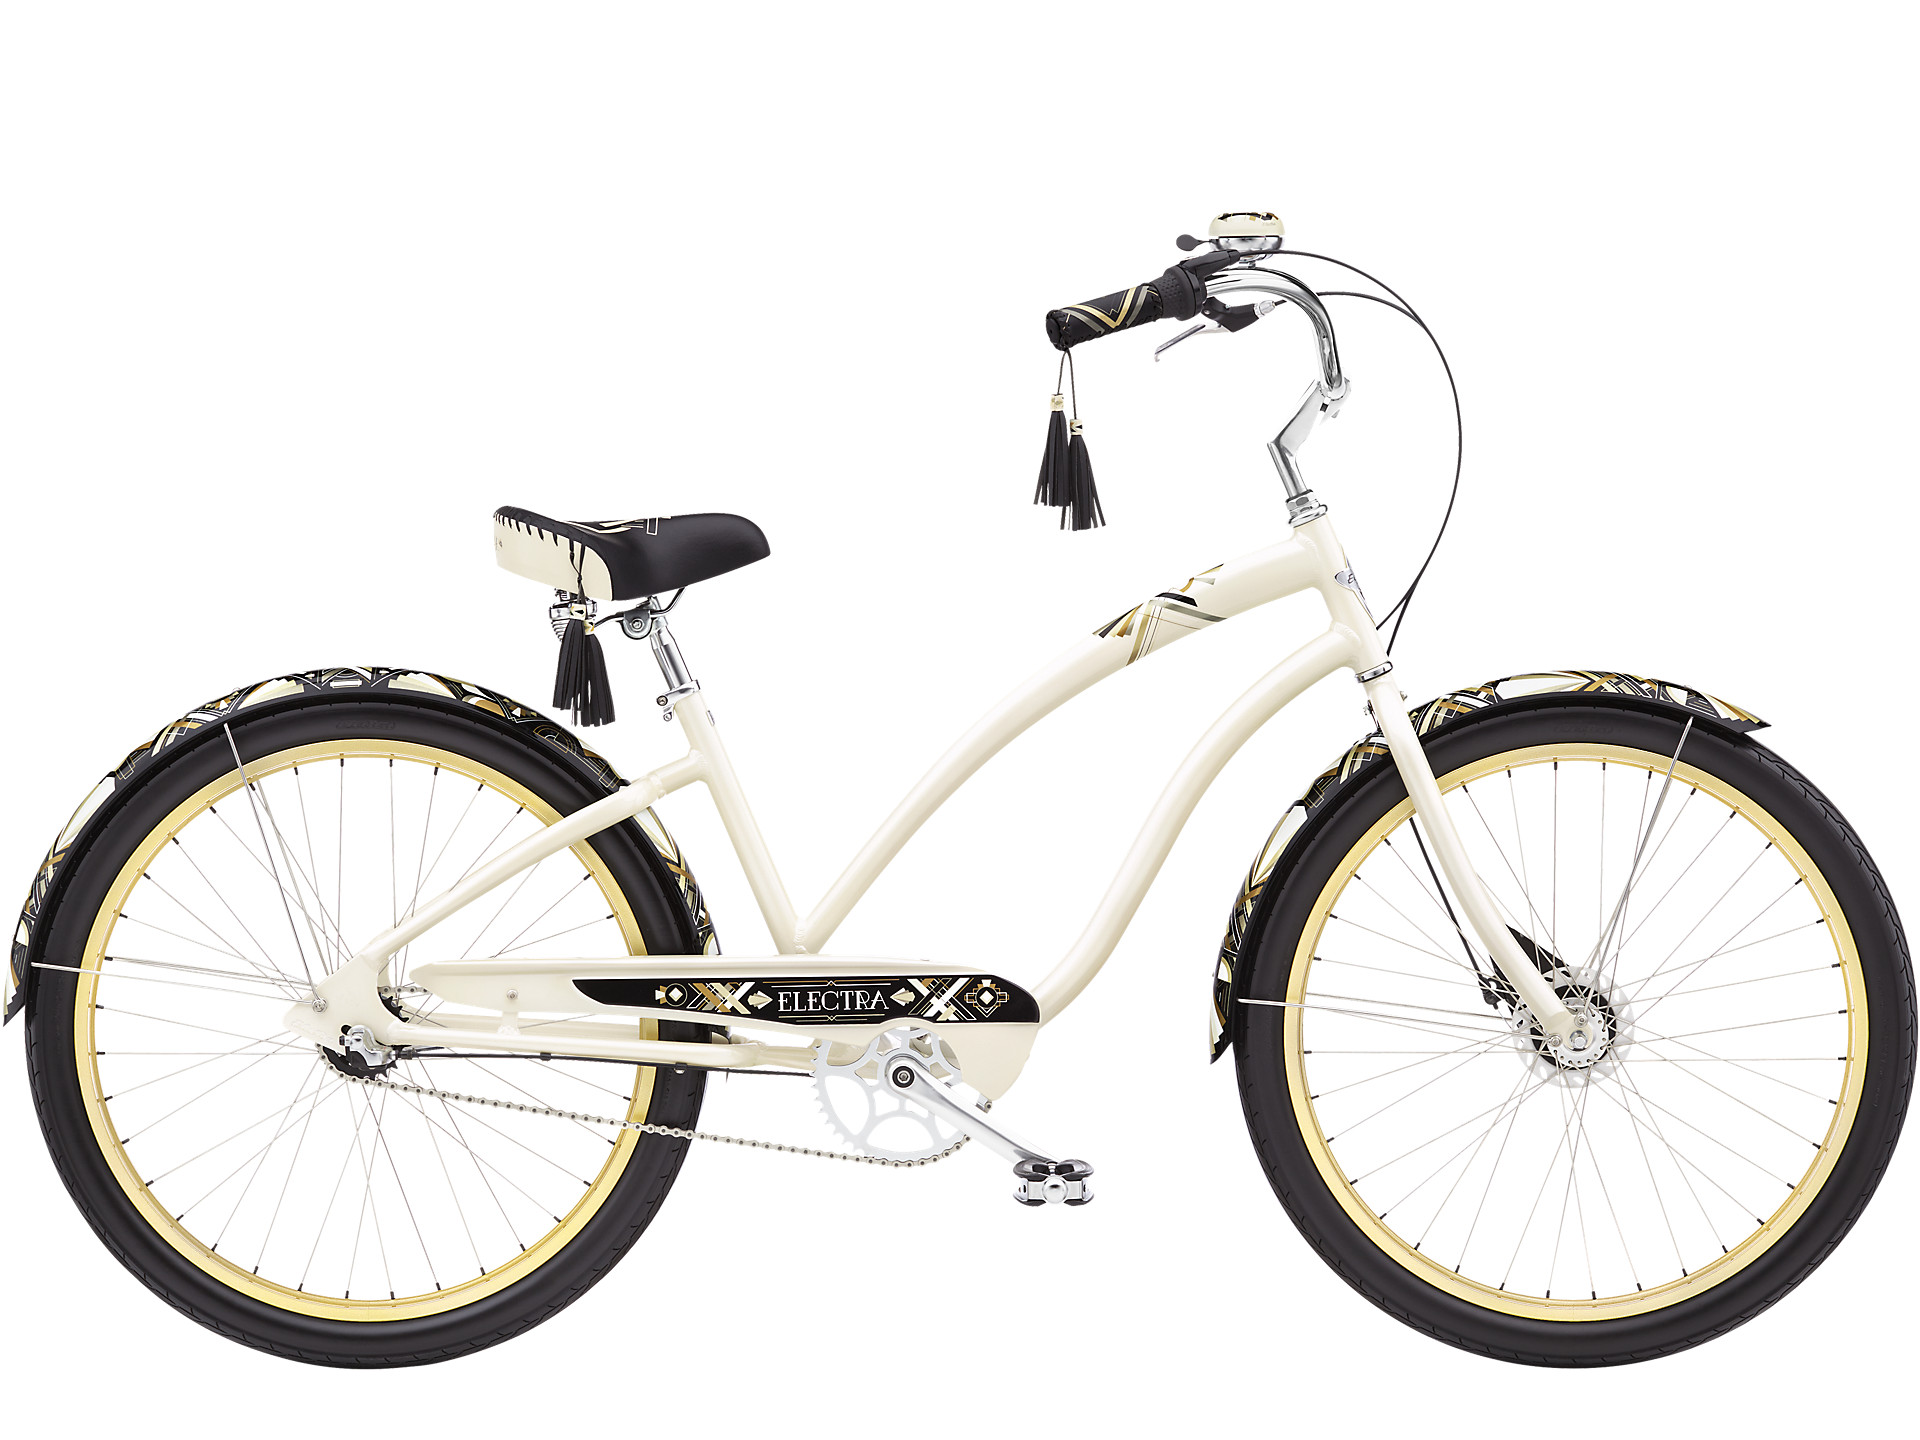 NEW ELECTRA BIKE KOA LARGE DING DONG BELL *FREE SHIPPING LAST ONE